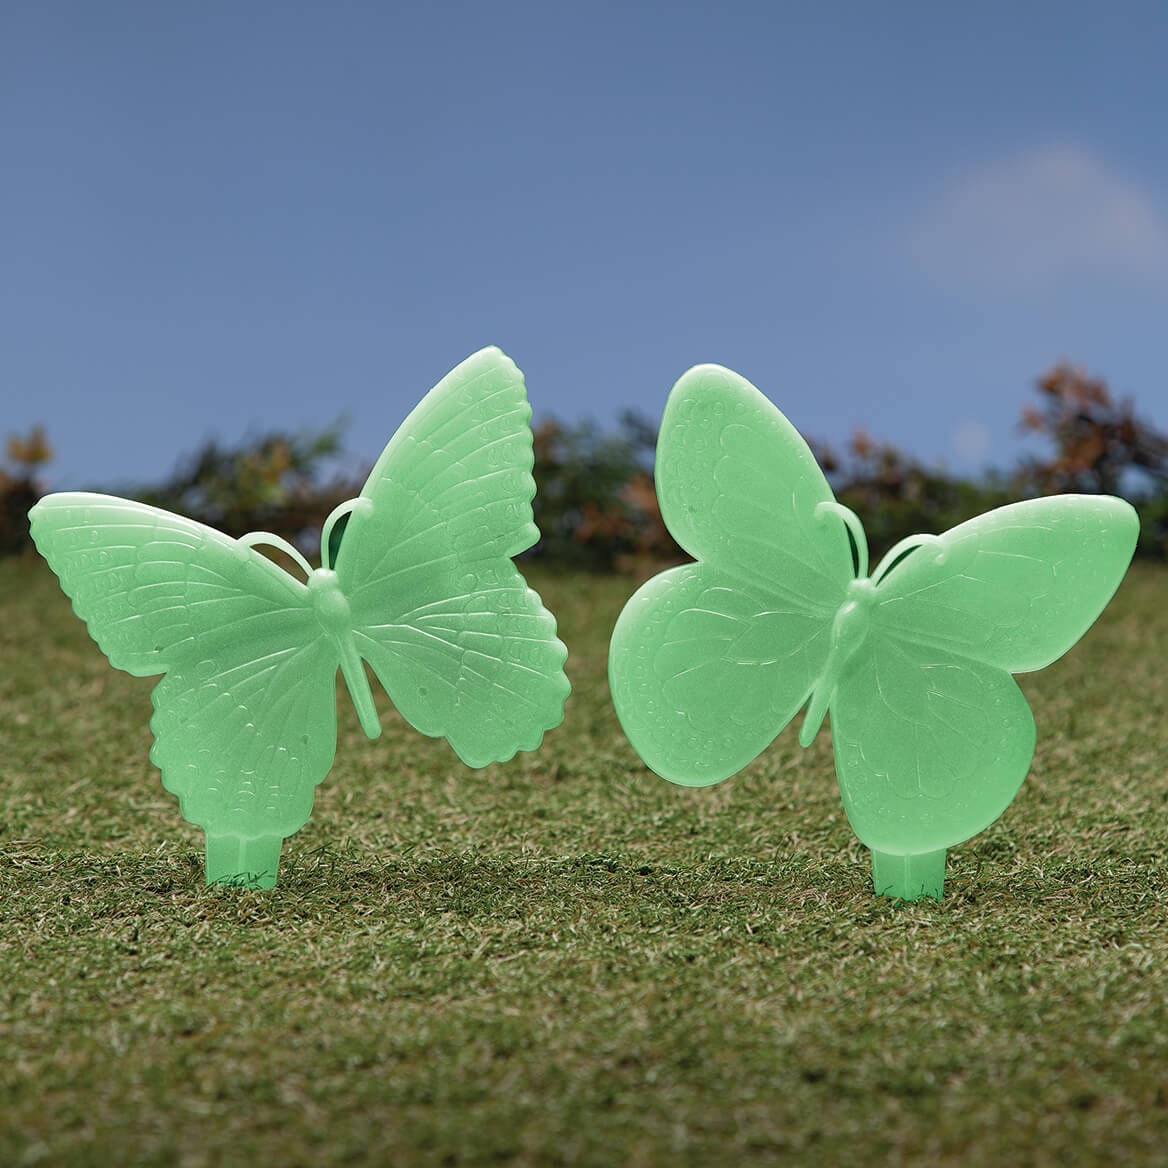 Glow in the Dark Butterfly Stakes, Set of 2-371400